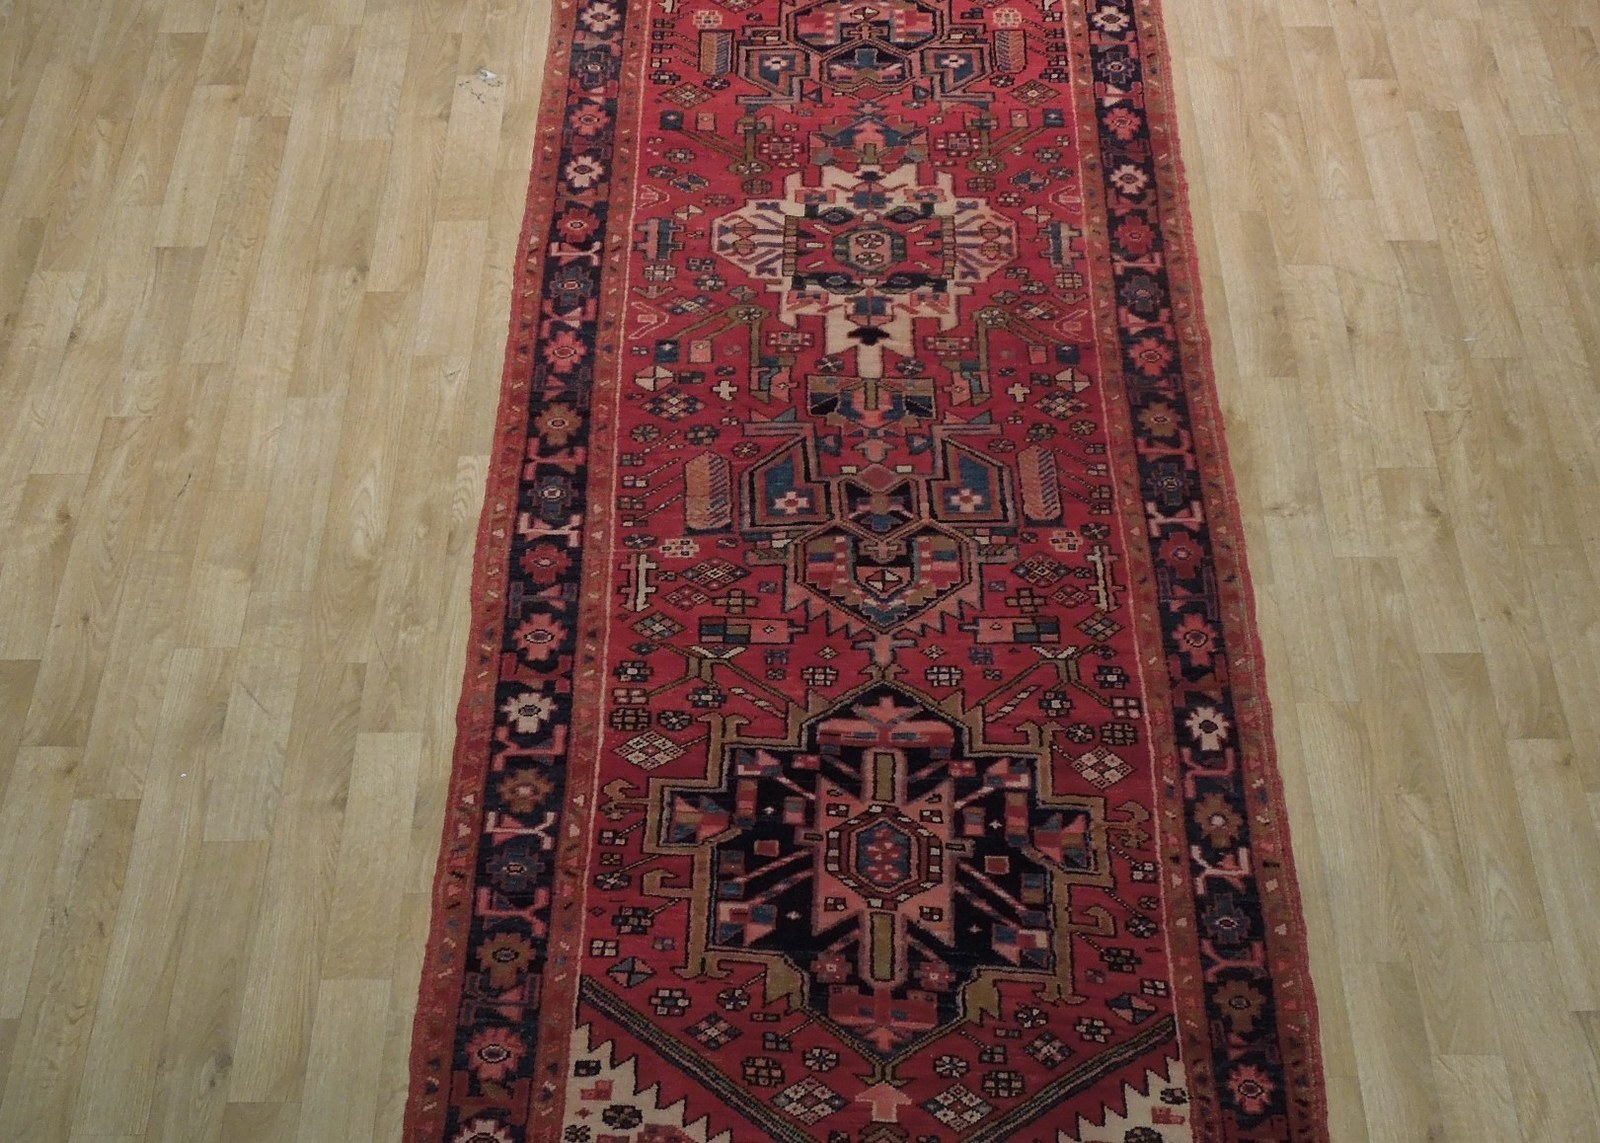 Tribal Inspired Olde Runner Persian Hand-Knotted 2' x 11' Red Heriz Wool Rug image 12